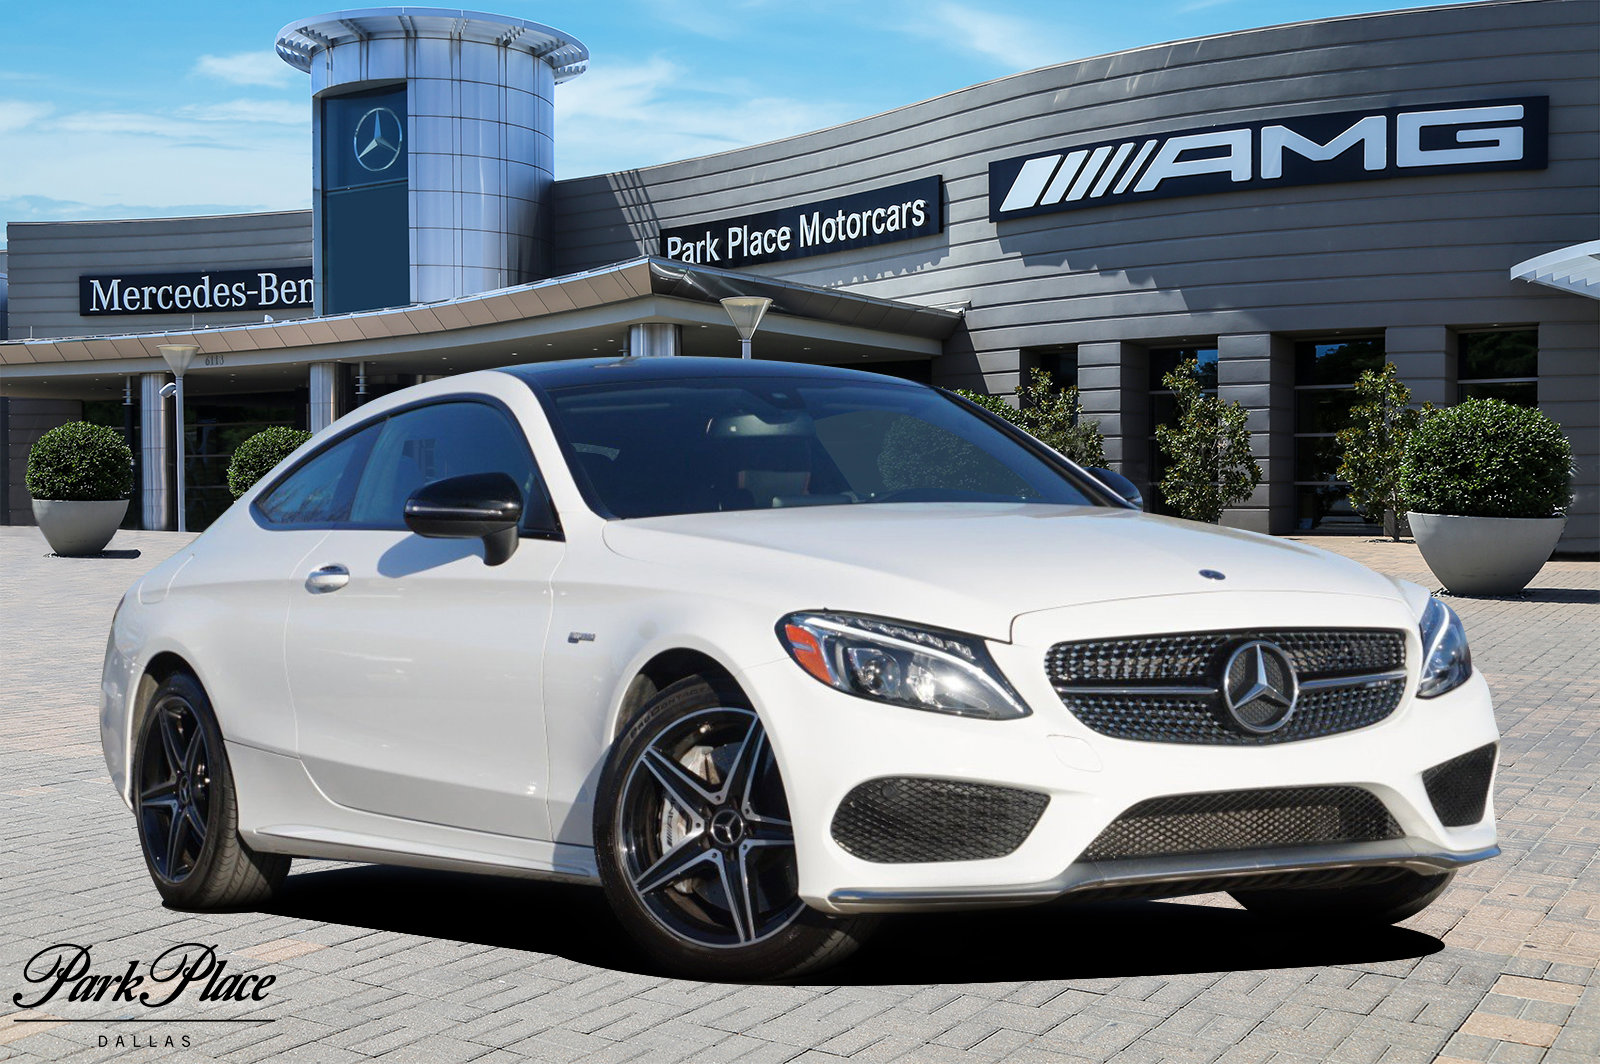 2018 Mercedes-Benz C 43 AMG 4MATIC Coupe image